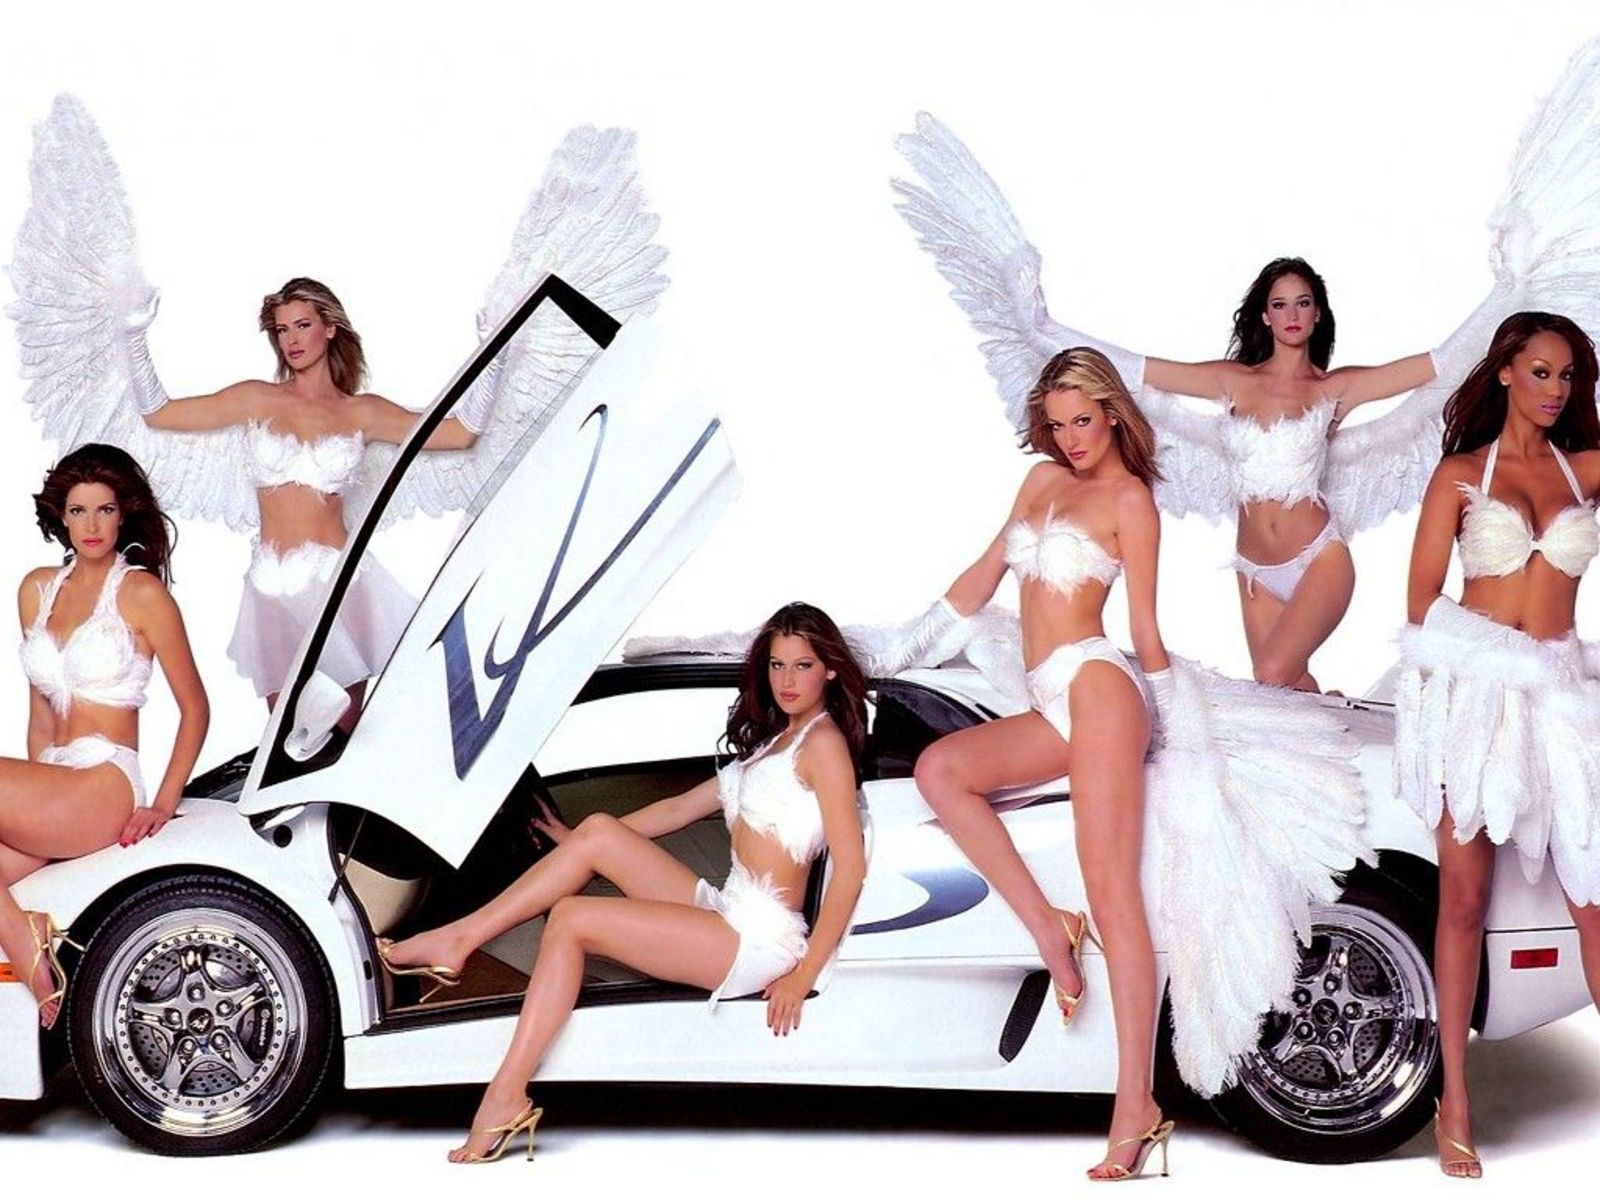 Sexy Model Girls And Cars Lambo Babes 2011 Free Wallpapers Download High Resolution 1  200